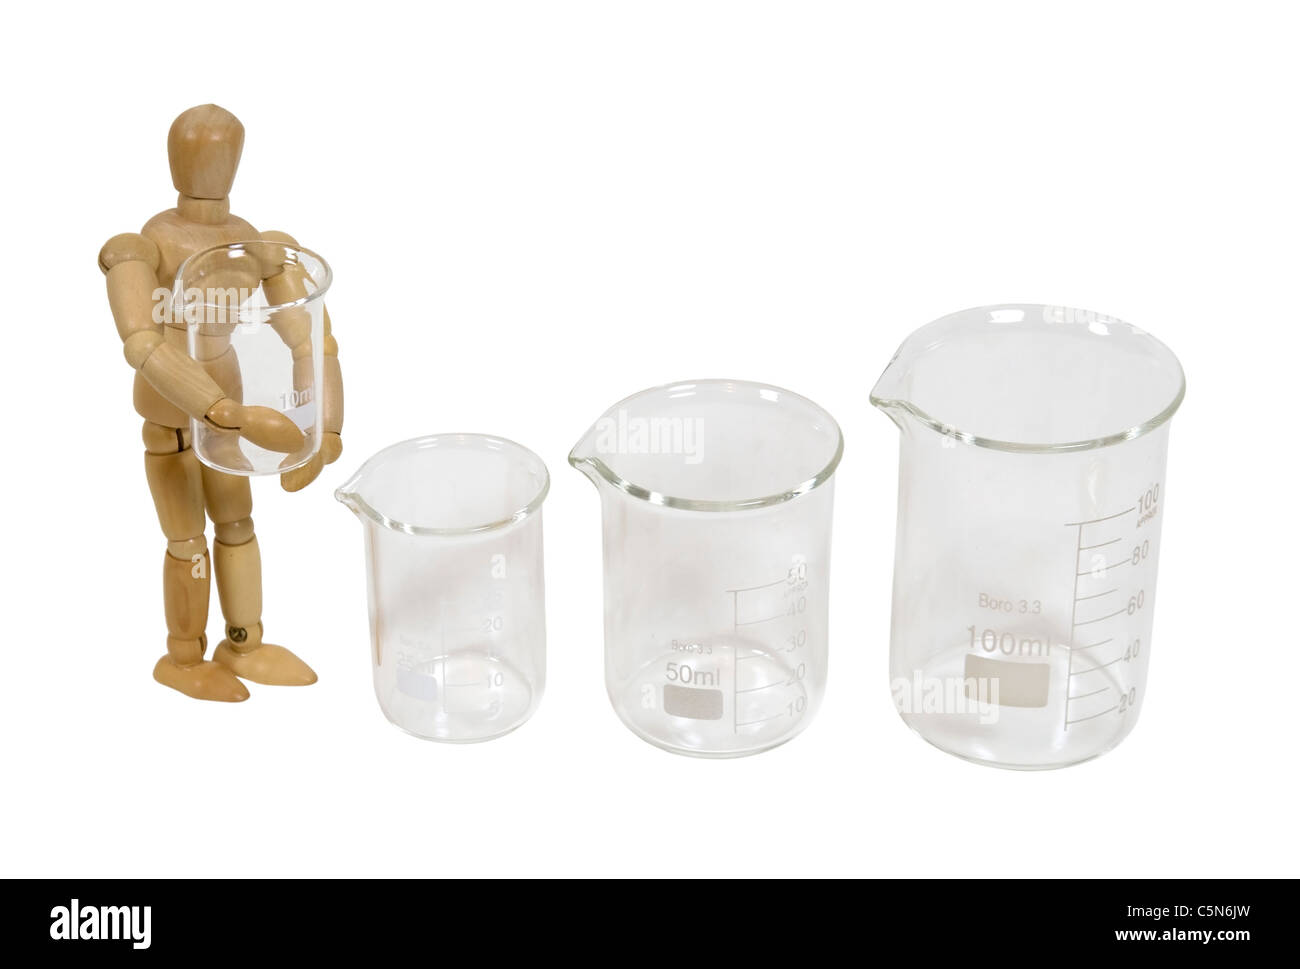 Holding a glass beaker used to measure and store liquids during research projects - path included Stock Photo